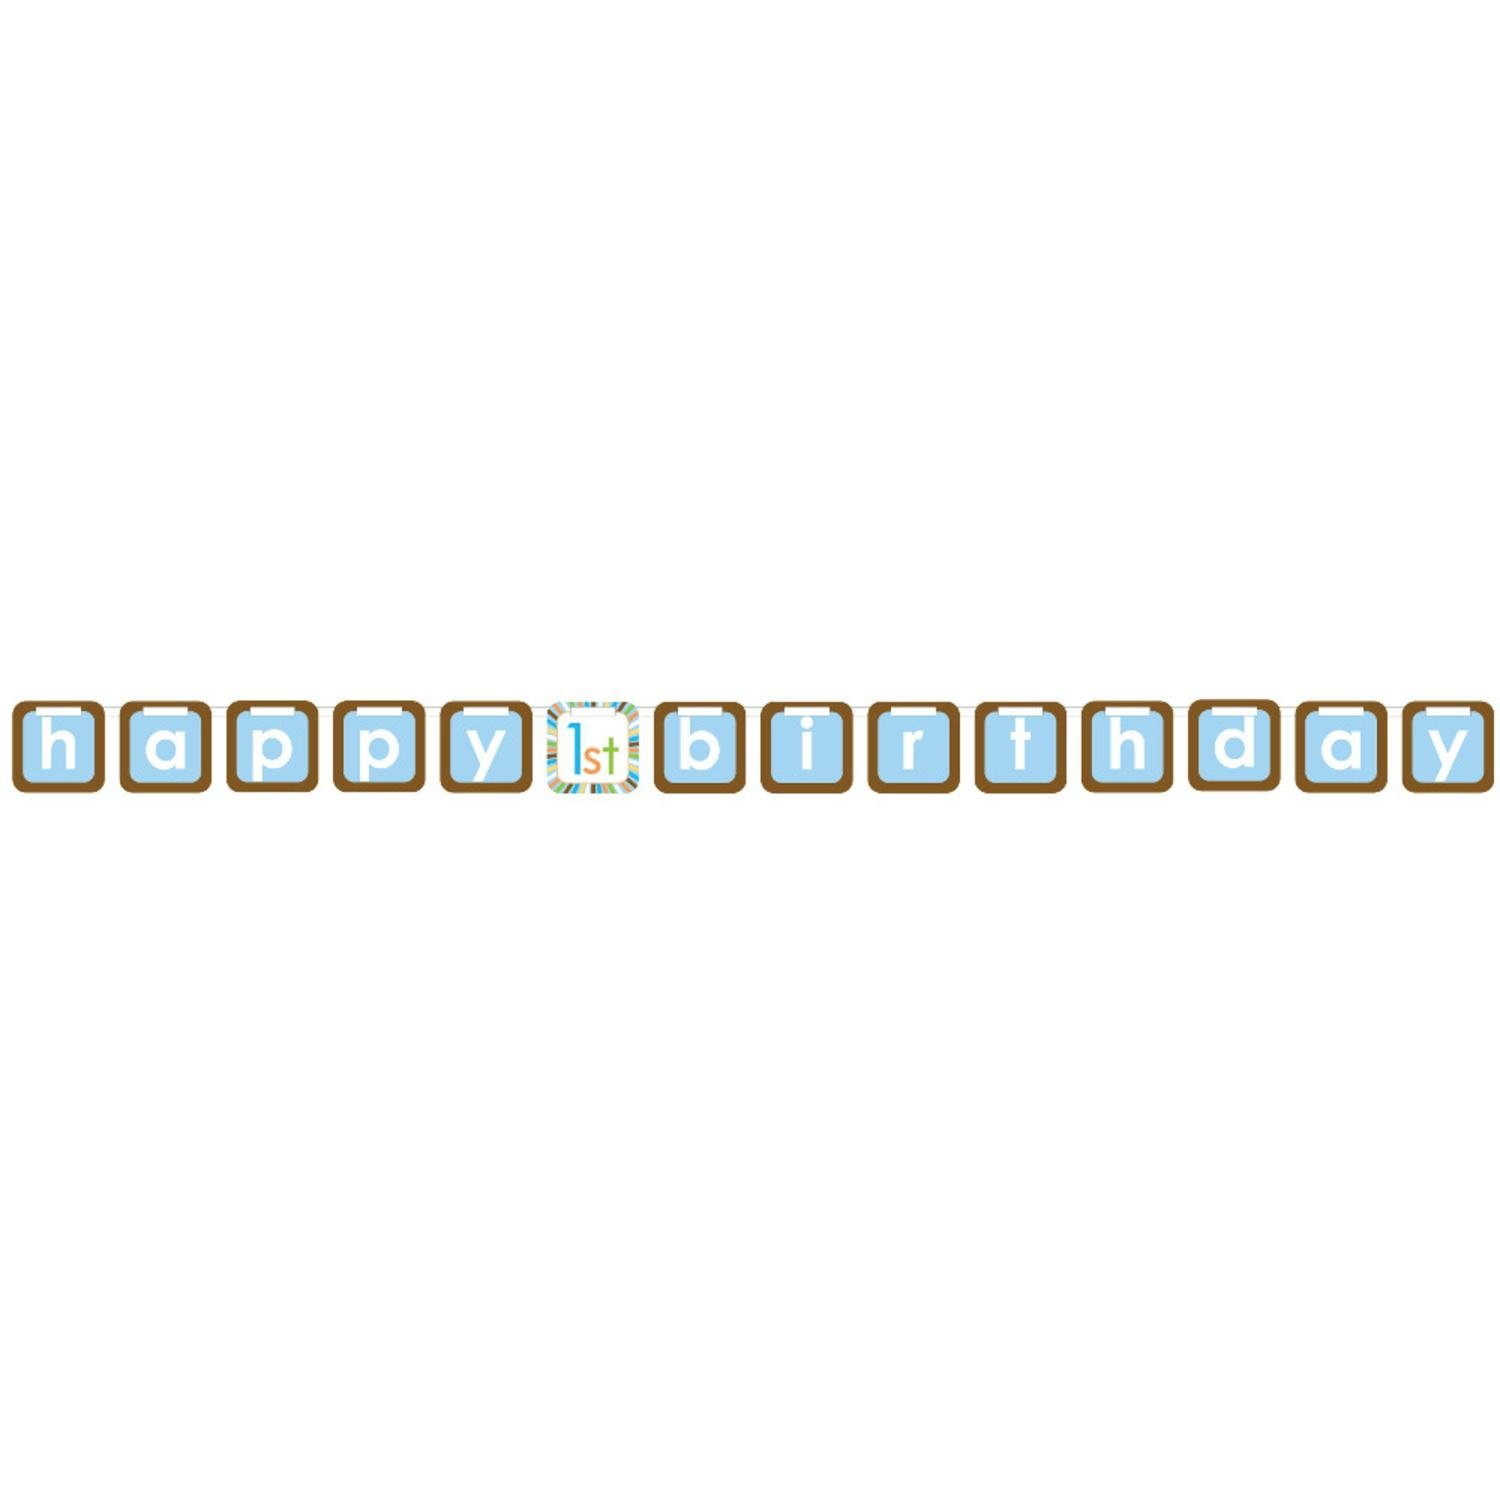 Pack of 12 Sweet At One Boy Happy Birthday Blue and Brown Ribbon Banners 8' by Party Central